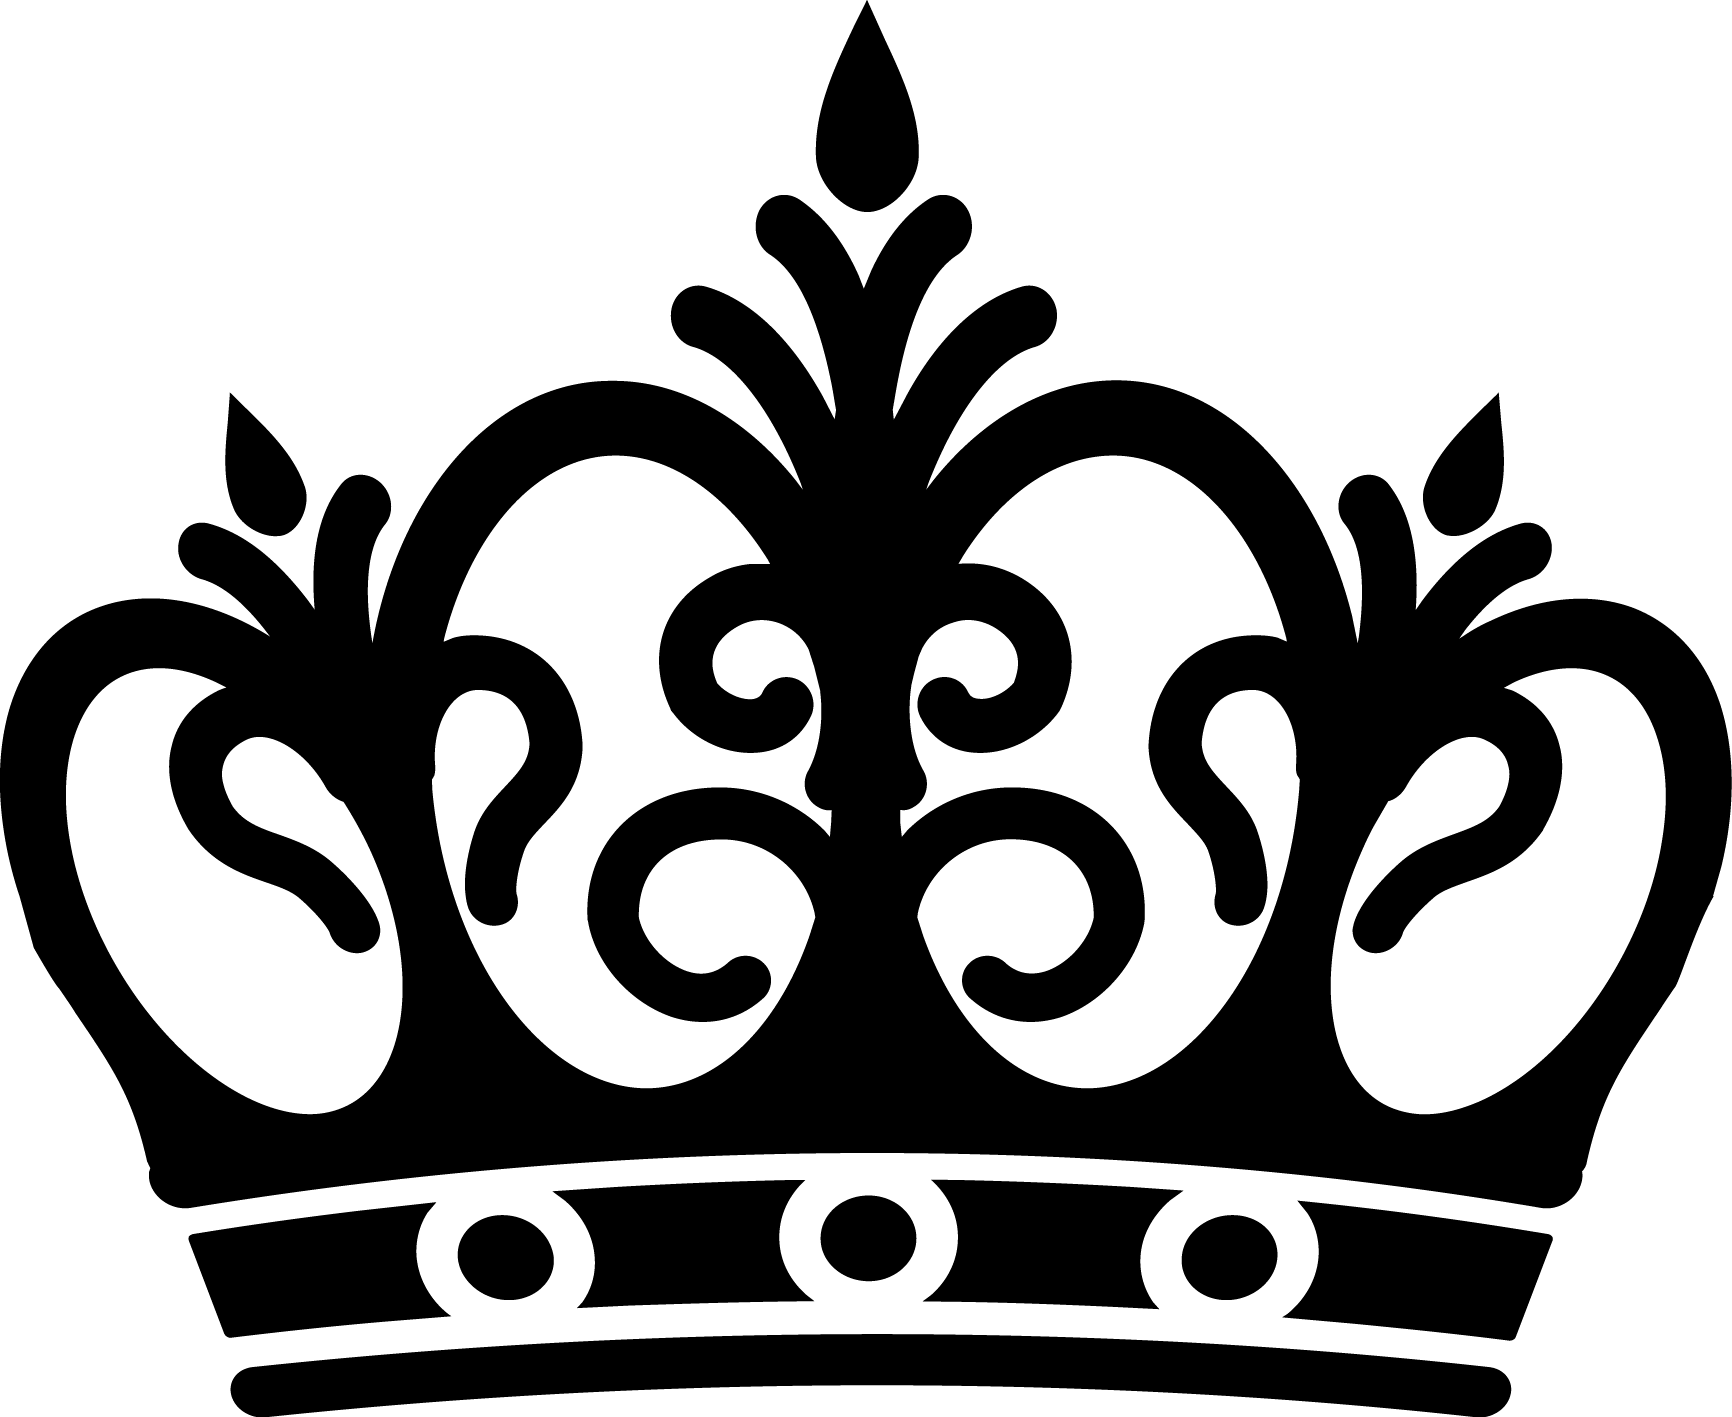 1732x1417 Download Queen Crown Logo Wallpaper Wide